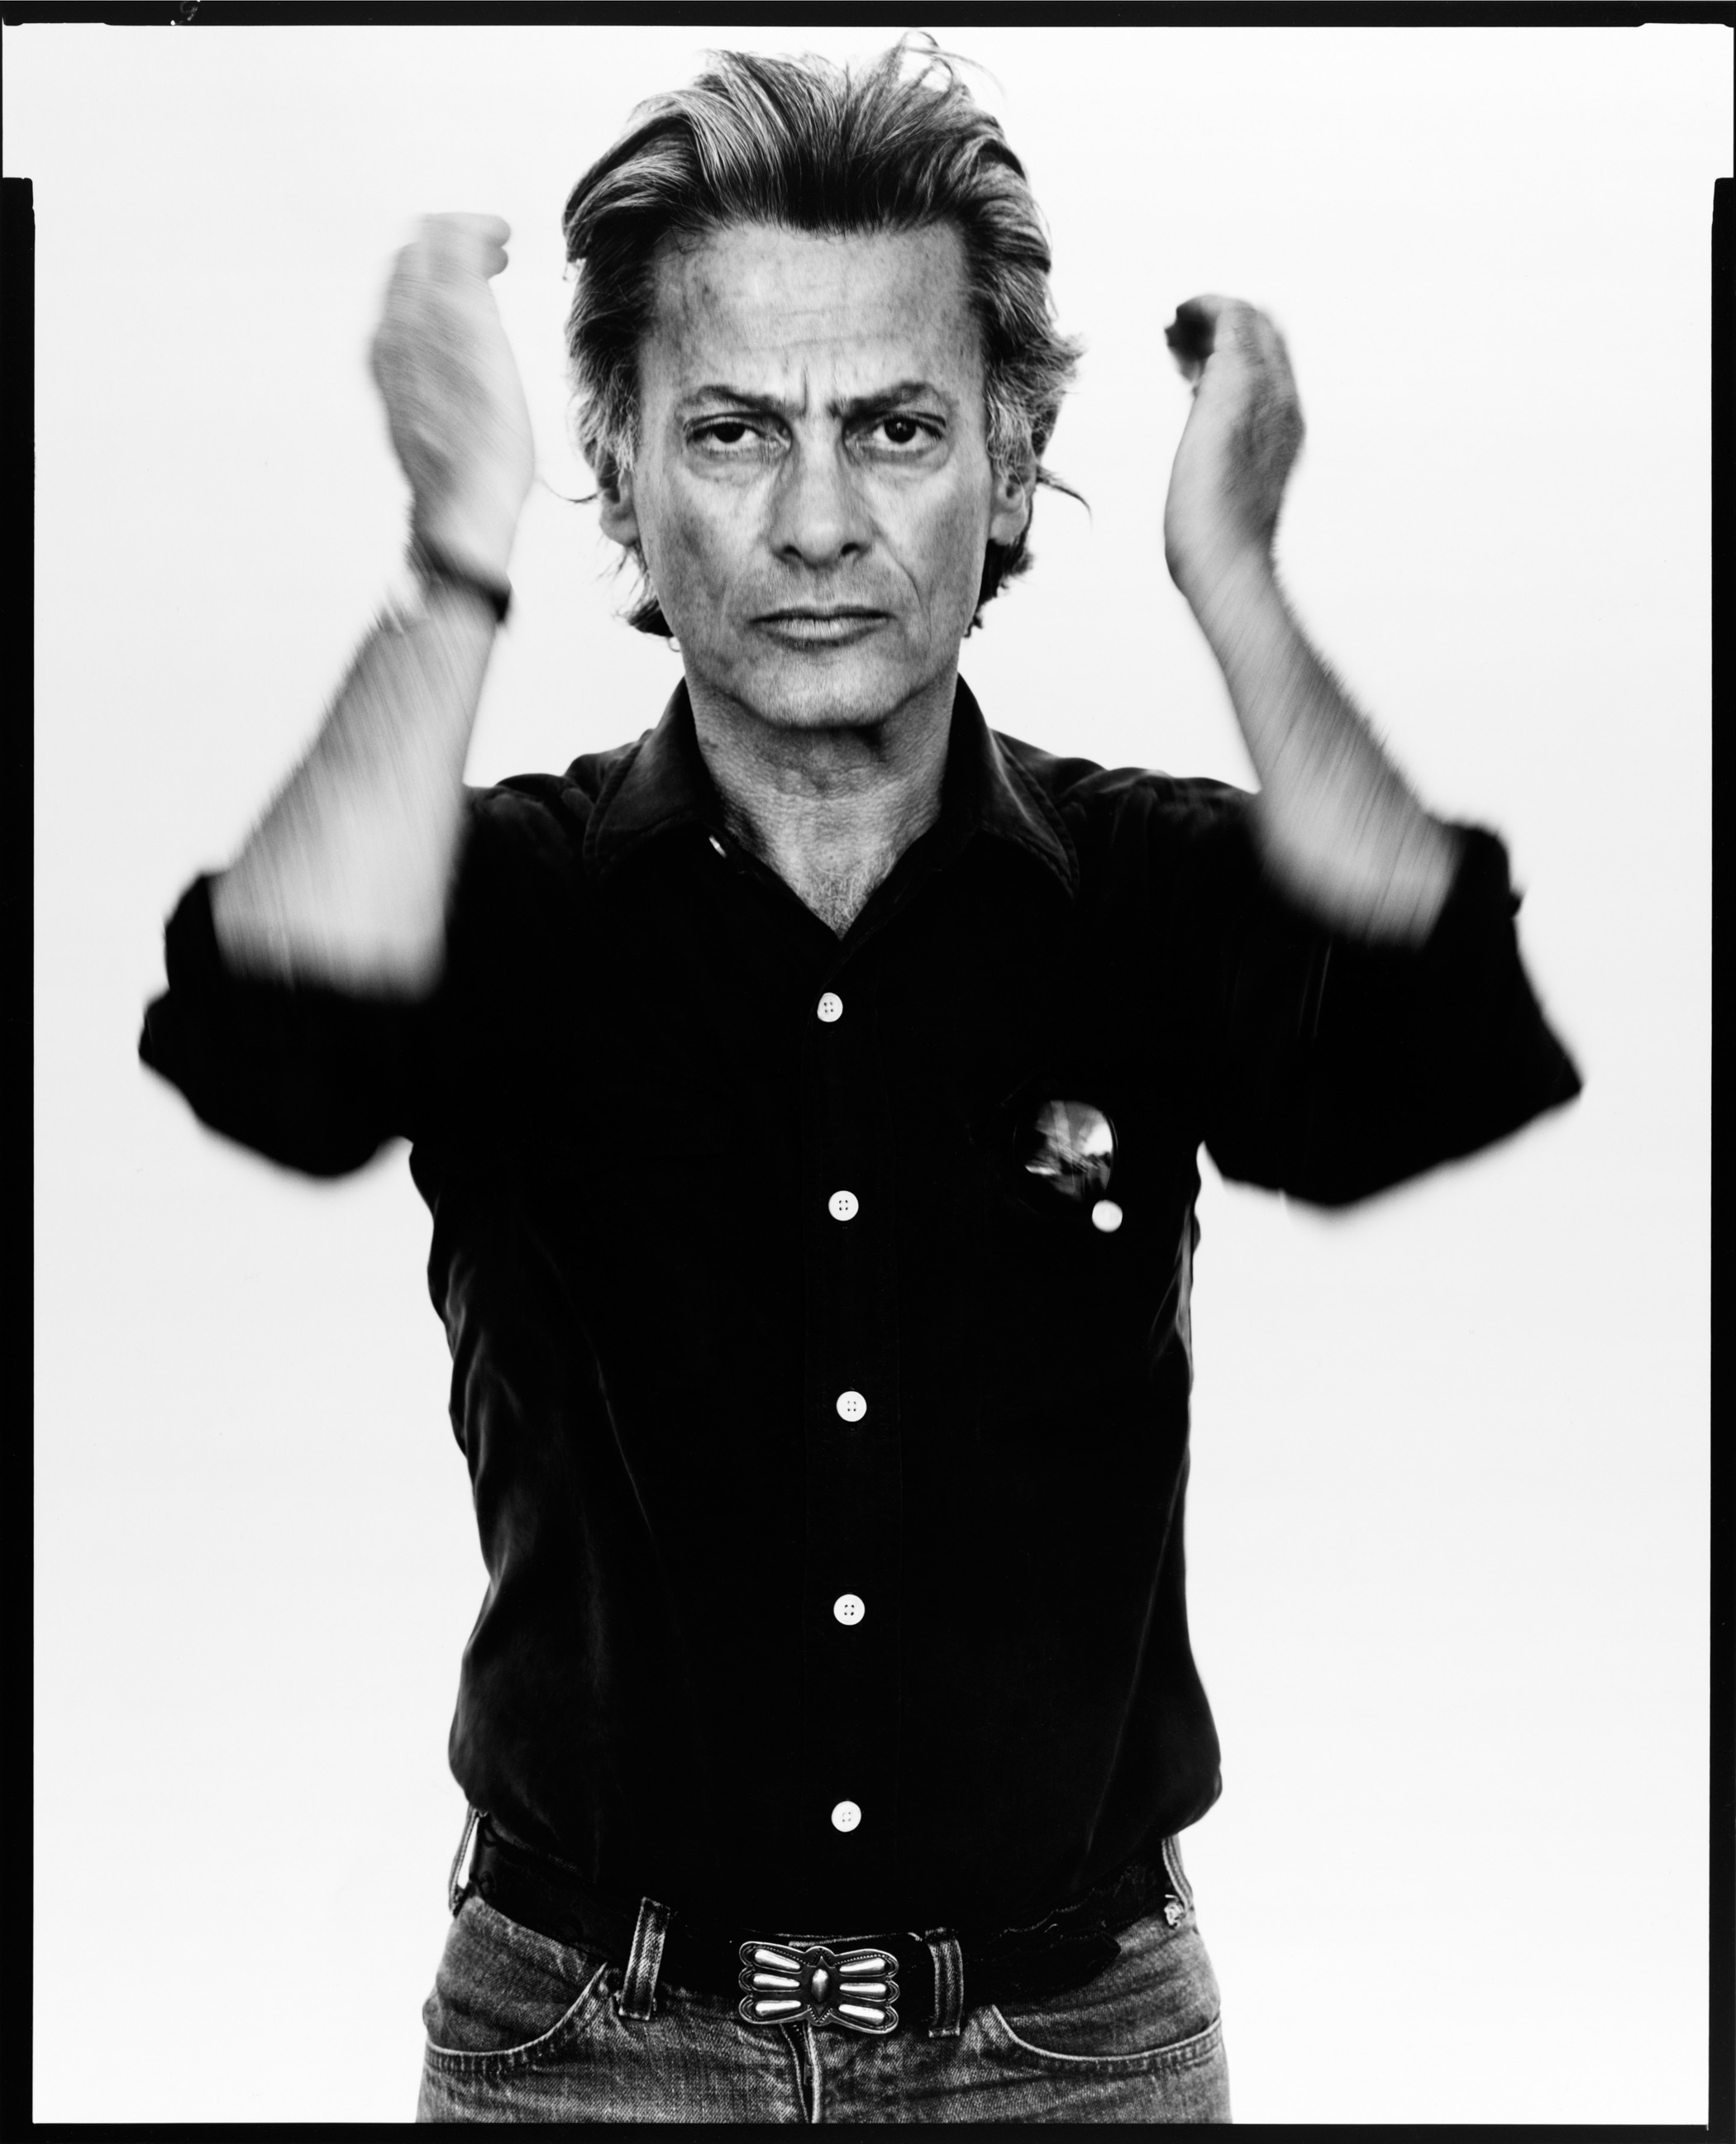 Richard avedon self portrait photographer